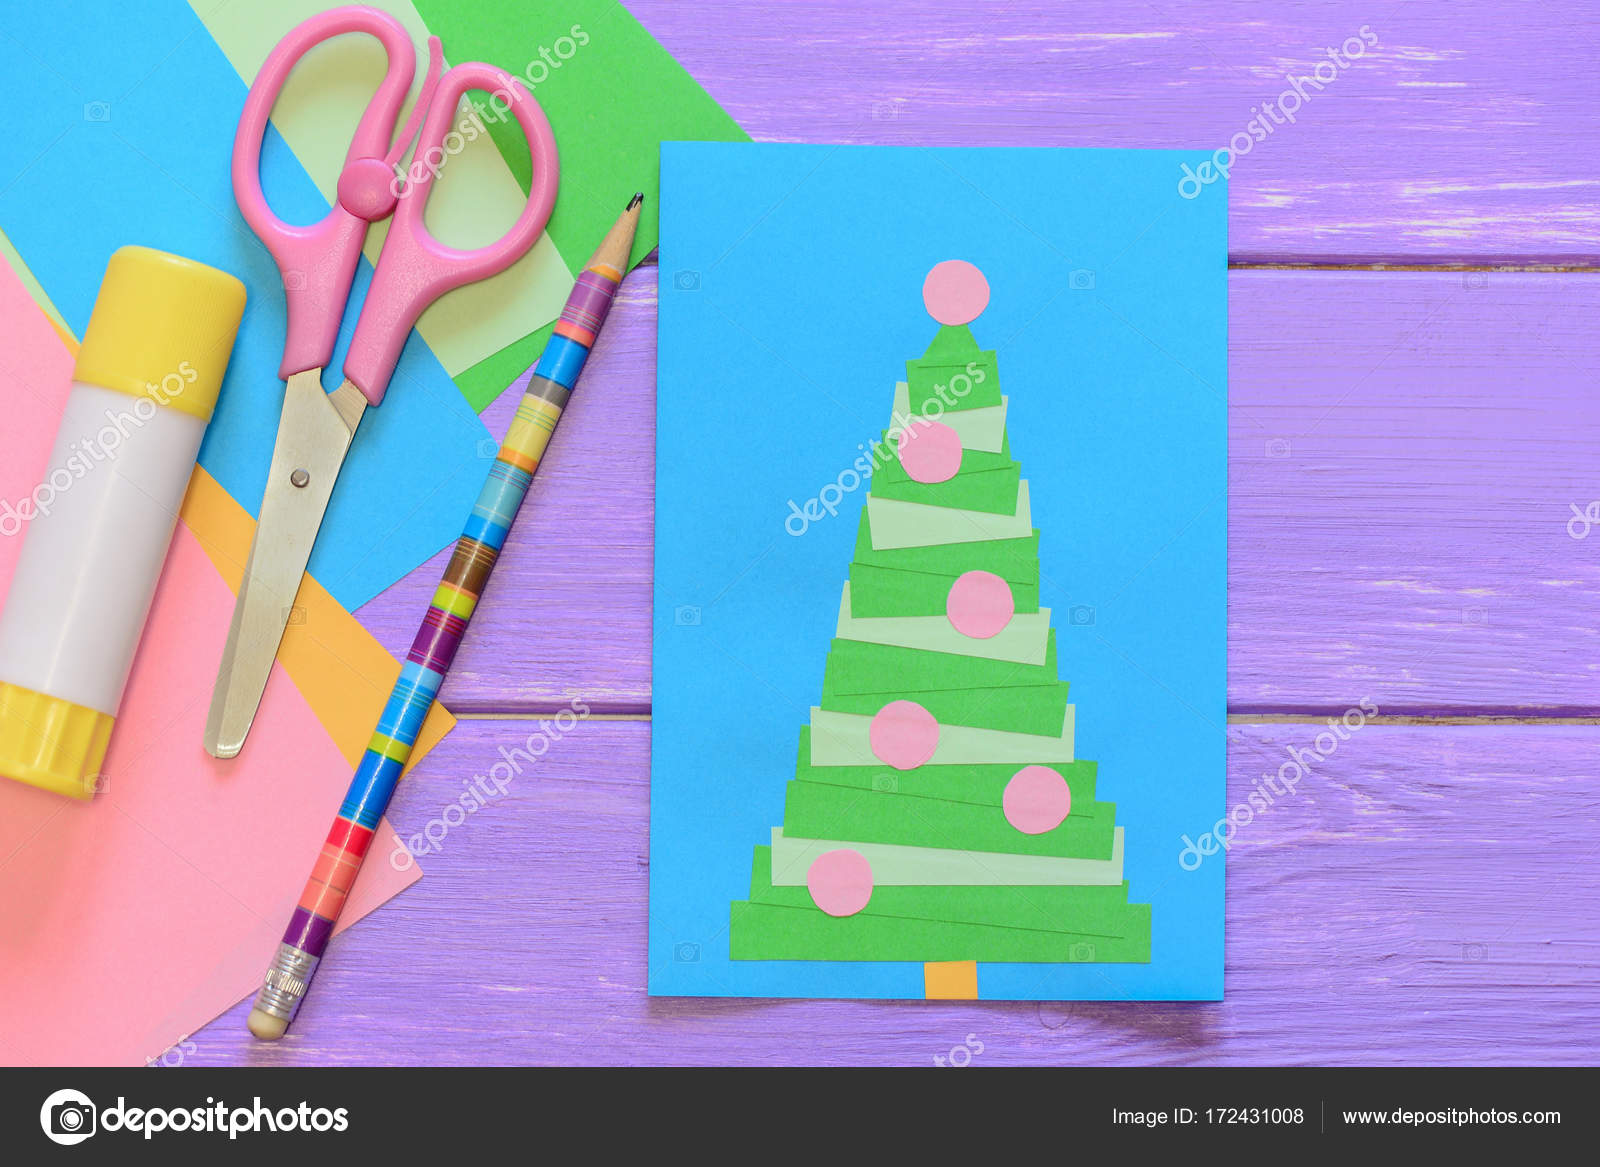 Easy homemade christmas card scissors glue stick pencil colored making christmas card christmas card ideas for toddlers childrens christmas cards creating christmas card simple greeting card design m4hsunfo